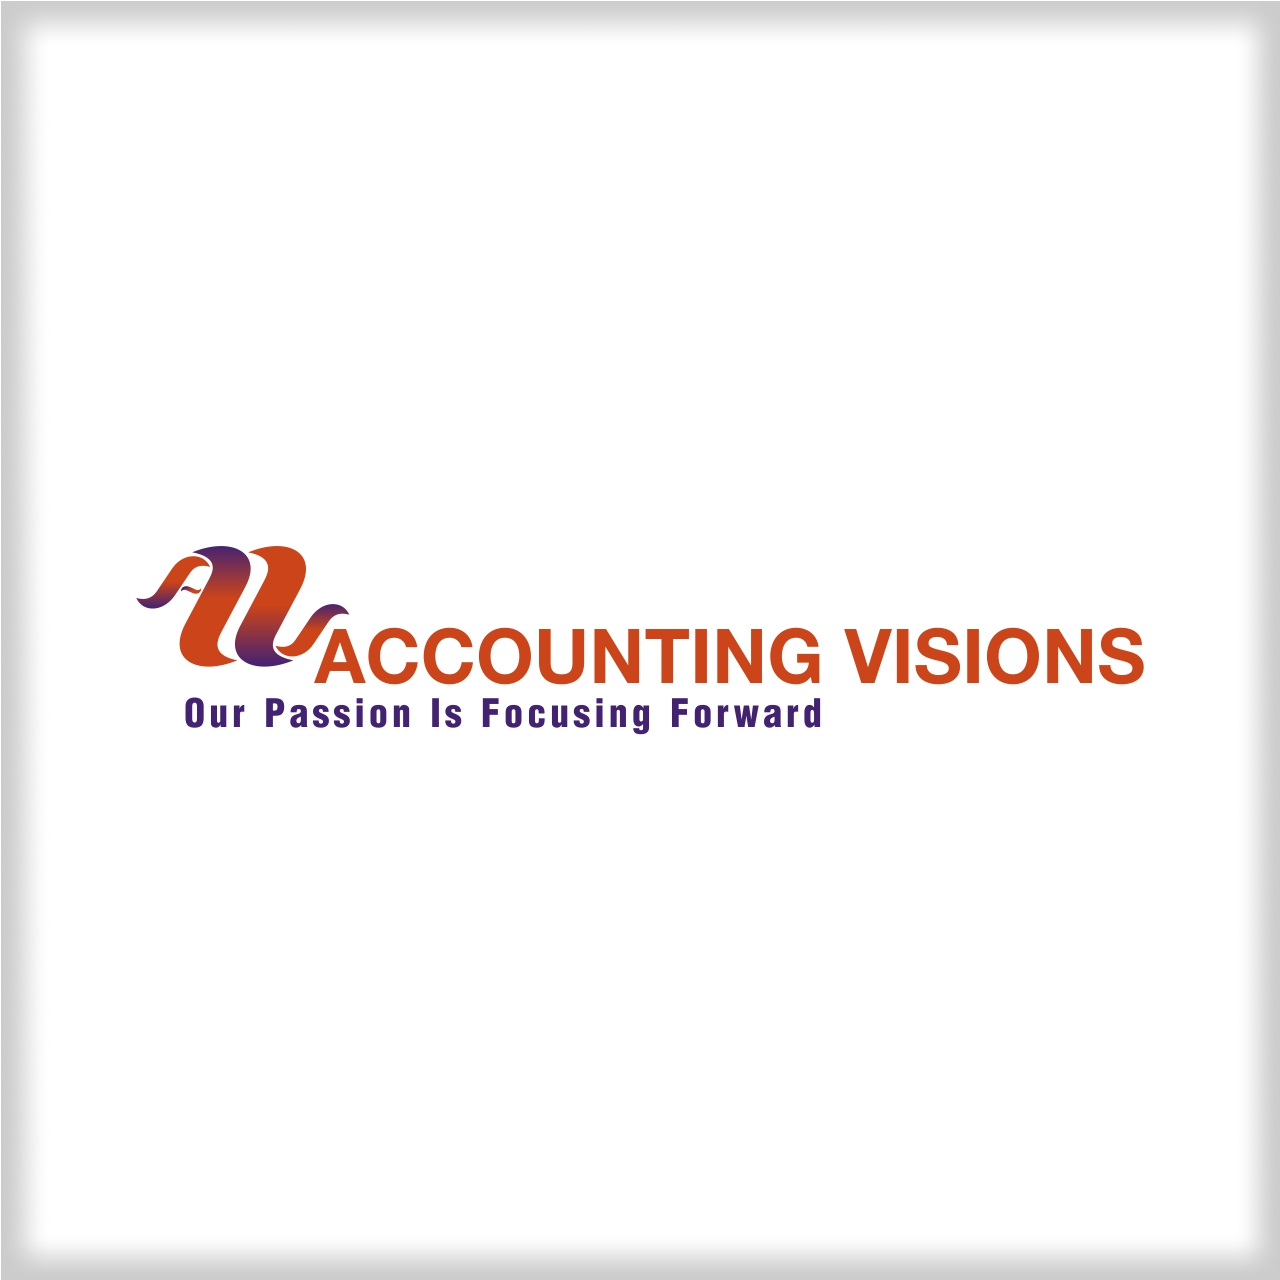 Logo Design by martinz - Entry No. 24 in the Logo Design Contest Accounting Visions.